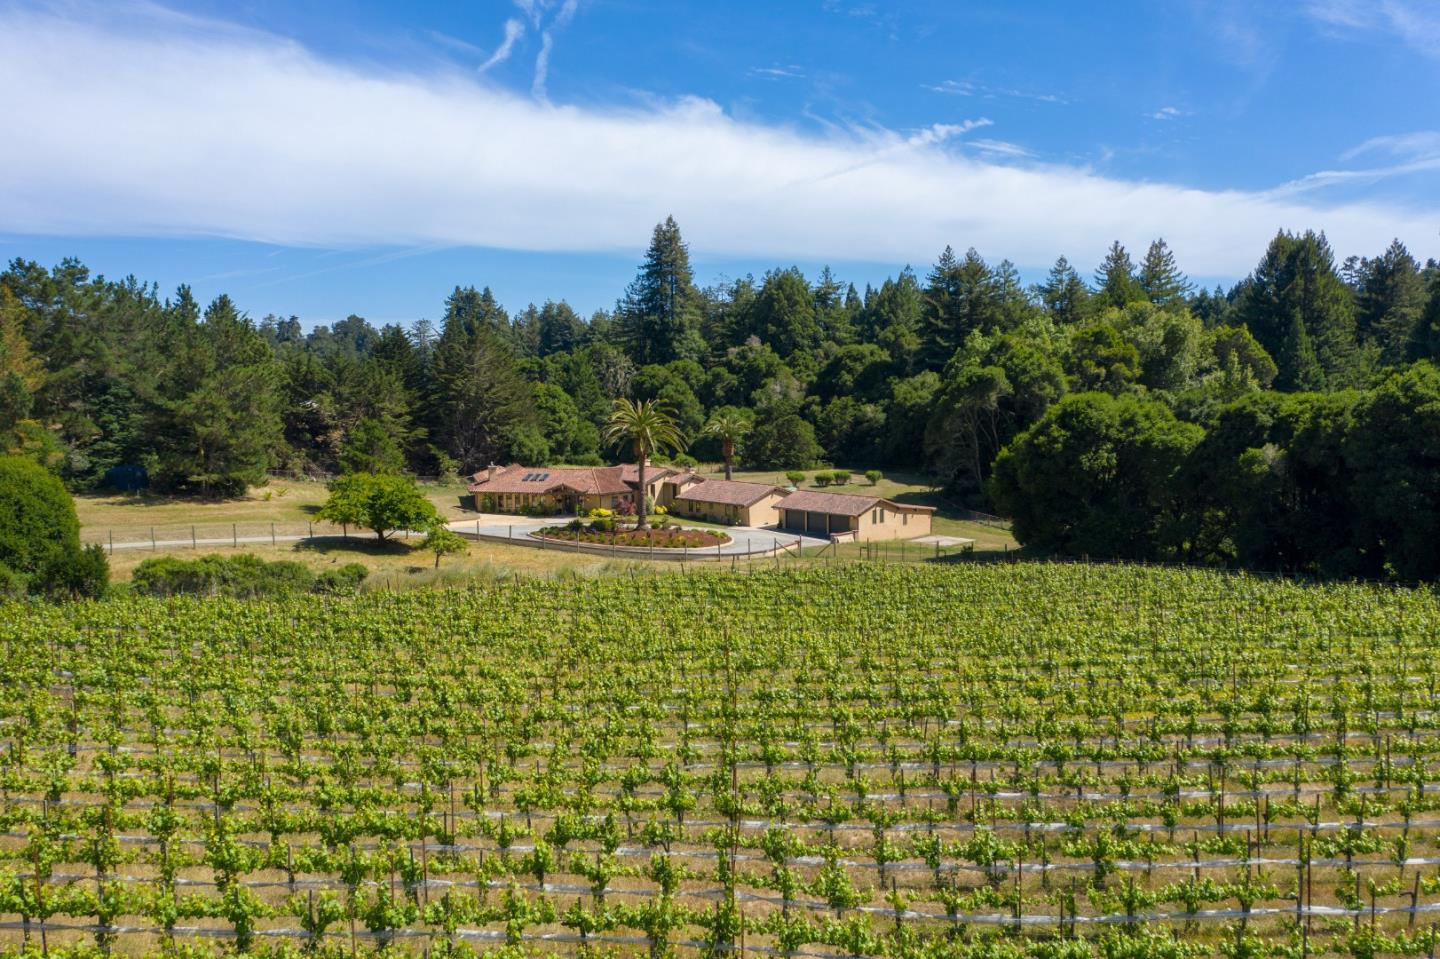 Gorgeous 5.25 acre vineyard estate. This single level Rancher is located just minutes from Aptos Village, beaches & surfing, as well as the best mountain biking and hiking right outside your door! Travertine floors, vaulted ceilings, abundant natural lighting, & unique architecture greet you upon entering. Formal dining & living area w/ stone fireplace surround. Elegant kitchen offers open beam ceiling, top of the line appliances, granite counters & built in wine cooler! Informal dining flows easily into the family rm. Spacious master suite w/ a large walk in closet & open en suite bathroom. 2nd master suite in the opposite bedroom wing. Plenty of room for entertaining inside and out! Detached 1,460 sqft 3 car garage & workshop w/ 3 additional car stalls for equipment. All of this as well as a 2 acre dry farmed Pinot Noir vineyard, that produces top quality wine for 5 star & Michelin rated restaurants. Don't miss this opportunity to have your own estate in a private & gated location!